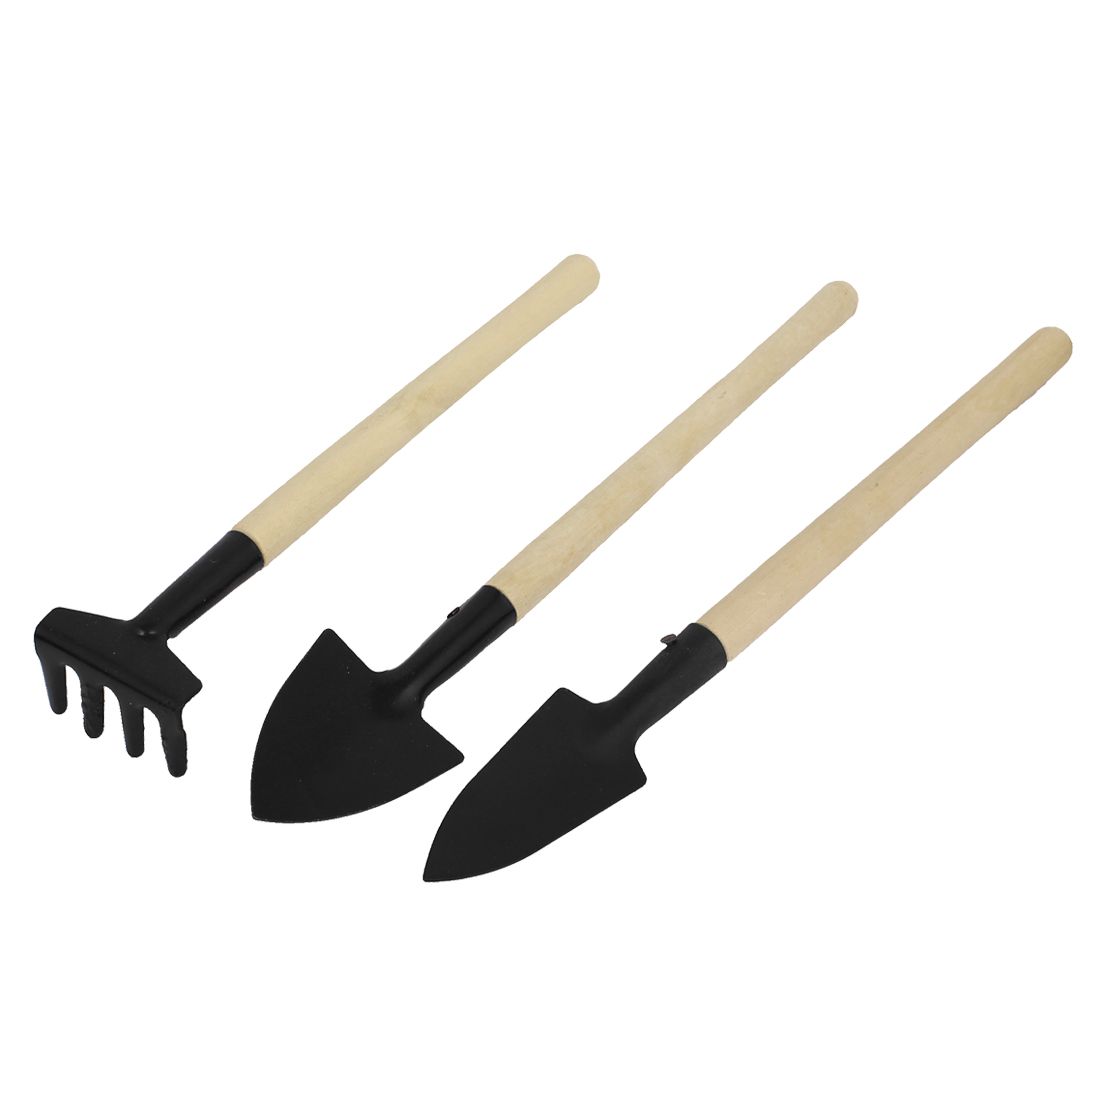 Garden Plant Wooden Handle Shovel Rake Spade Gardening Hand Tools Set 3pcs